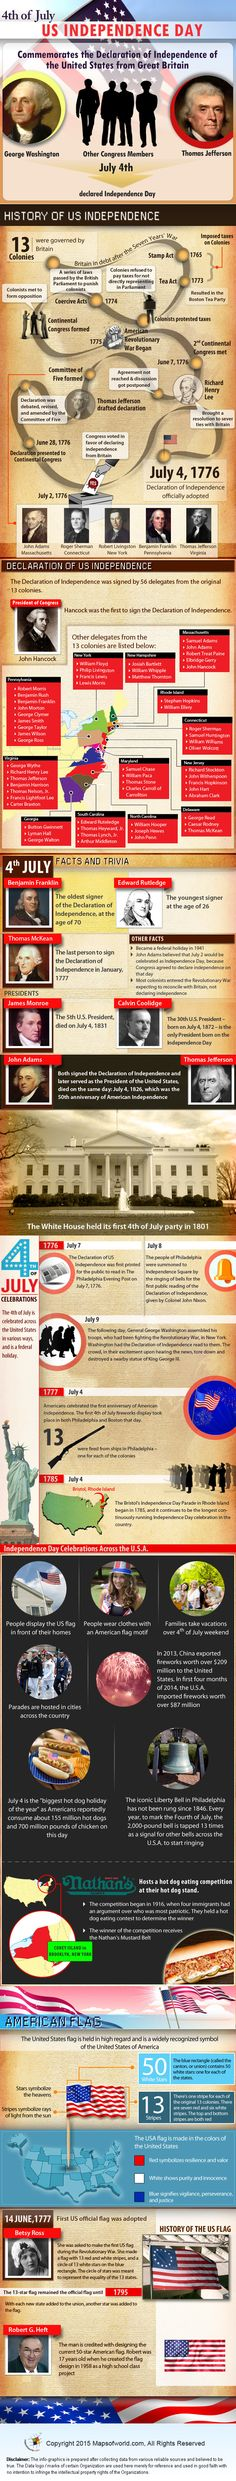 Check out this awesome #infographic that sheds light on the history of 4th of July - #USIndependenceDay: http://www.mapsofworld.com/usa/4th-of-july/infographics.html